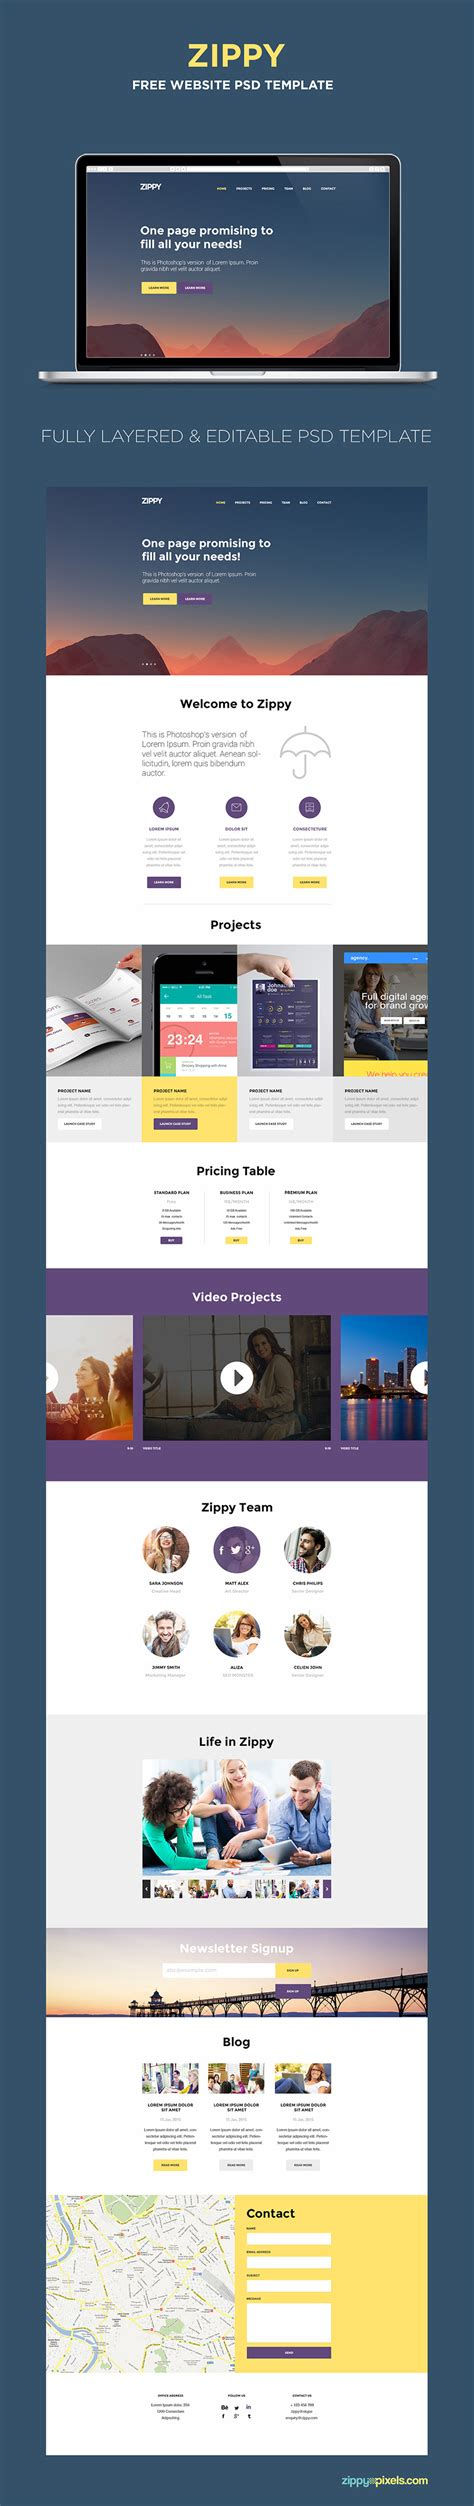 Free One Page Website Template Psd Zippypixels Single Page Website Template Free